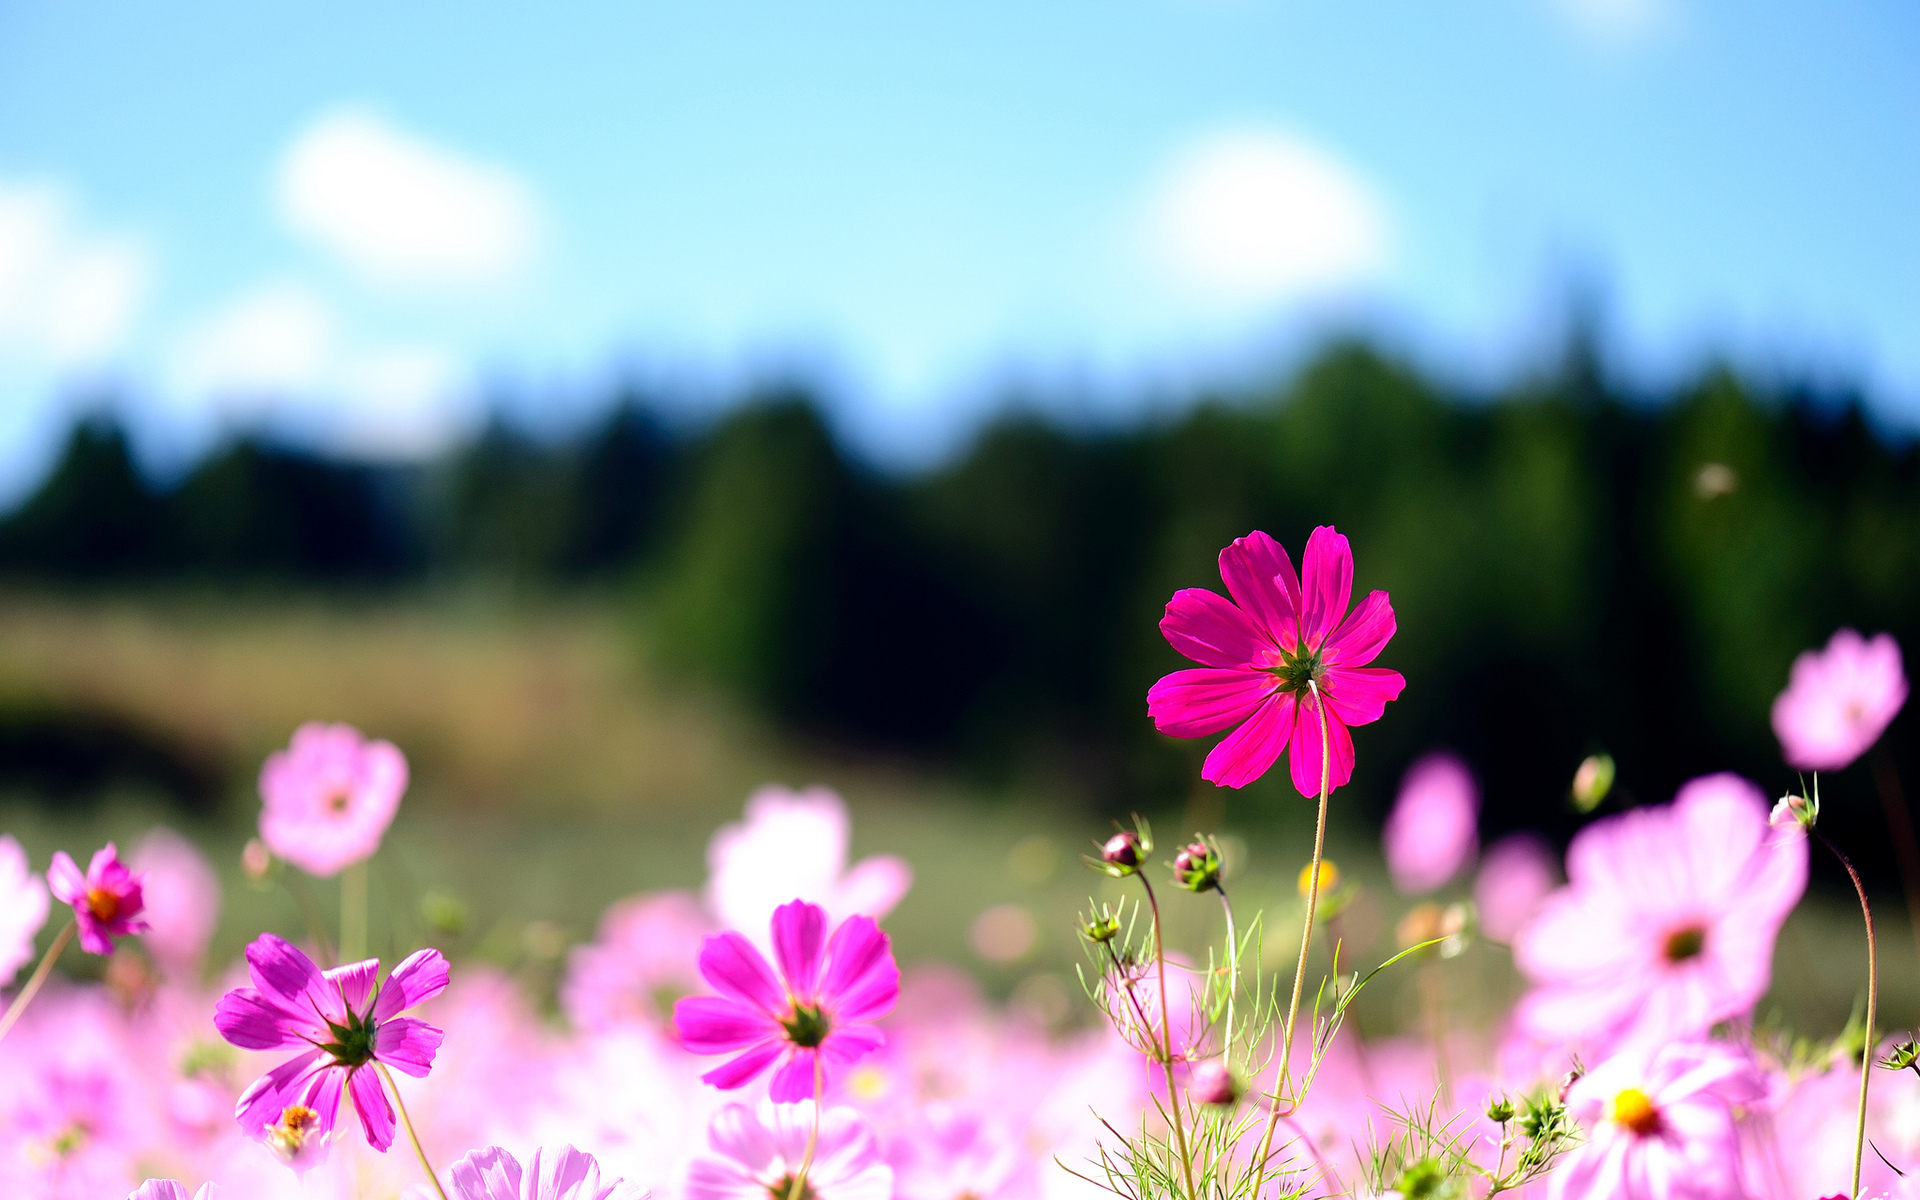 Backgrounds Flower Desktop With Free Wallpaper Nature Flowers 1920x1200